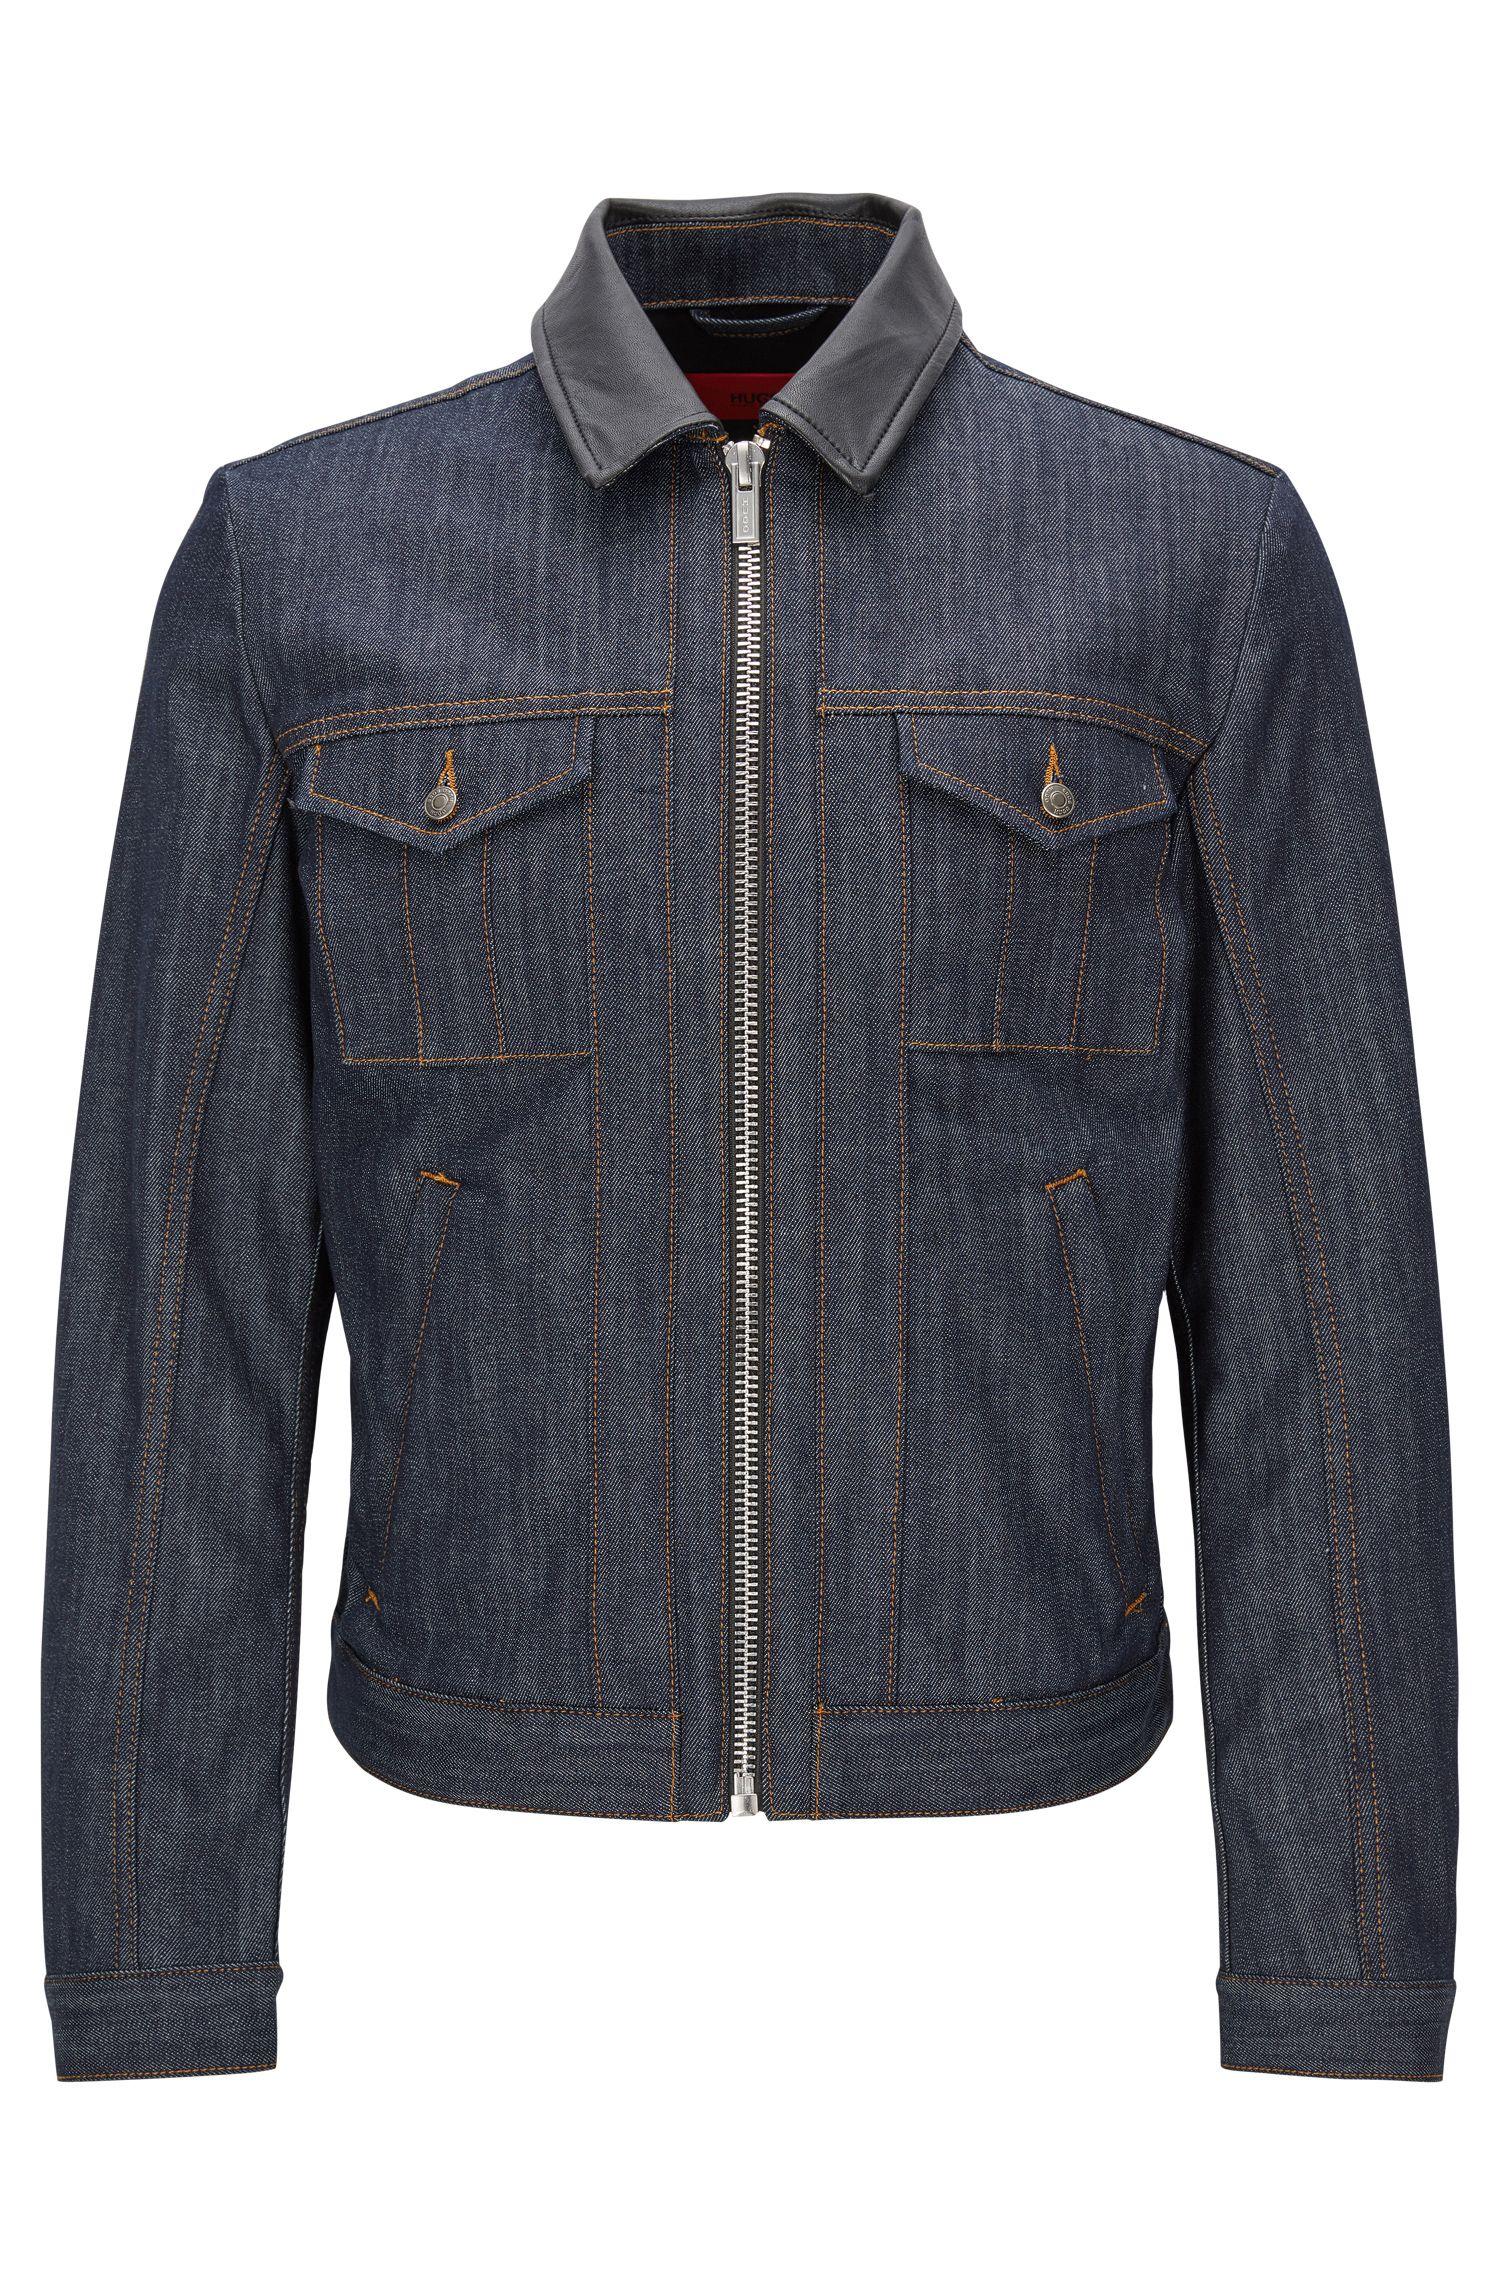 'HUGO 058' | Stretch Cotton Denim Jacket